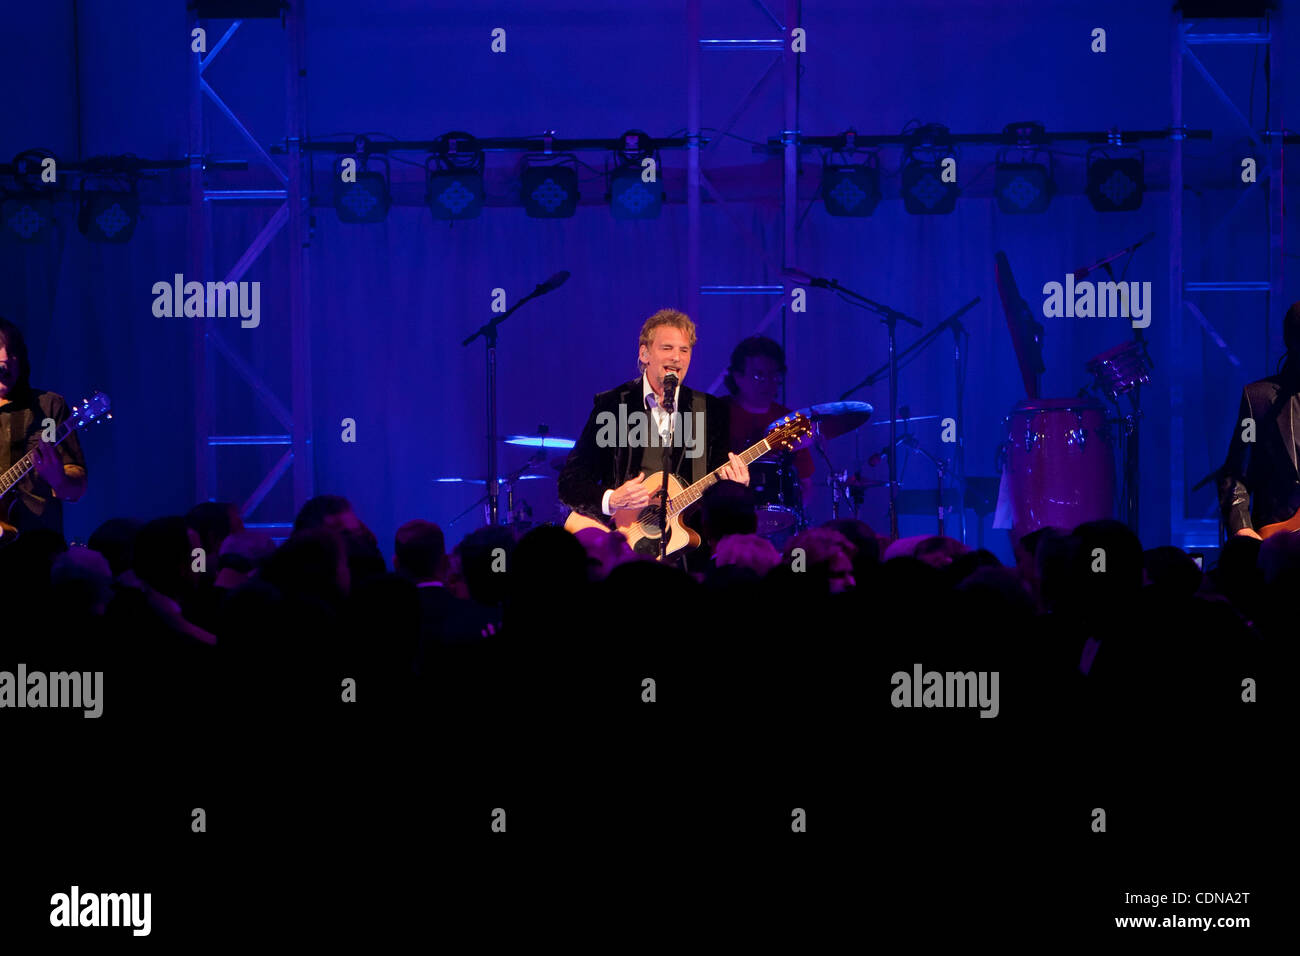 May 14, 2011: Rock legend Kenny Loggins performs during the El Camino  Hospital 50th Anniversary fundraising Gala at the Sharon Heights Country  Club in Menlo ...